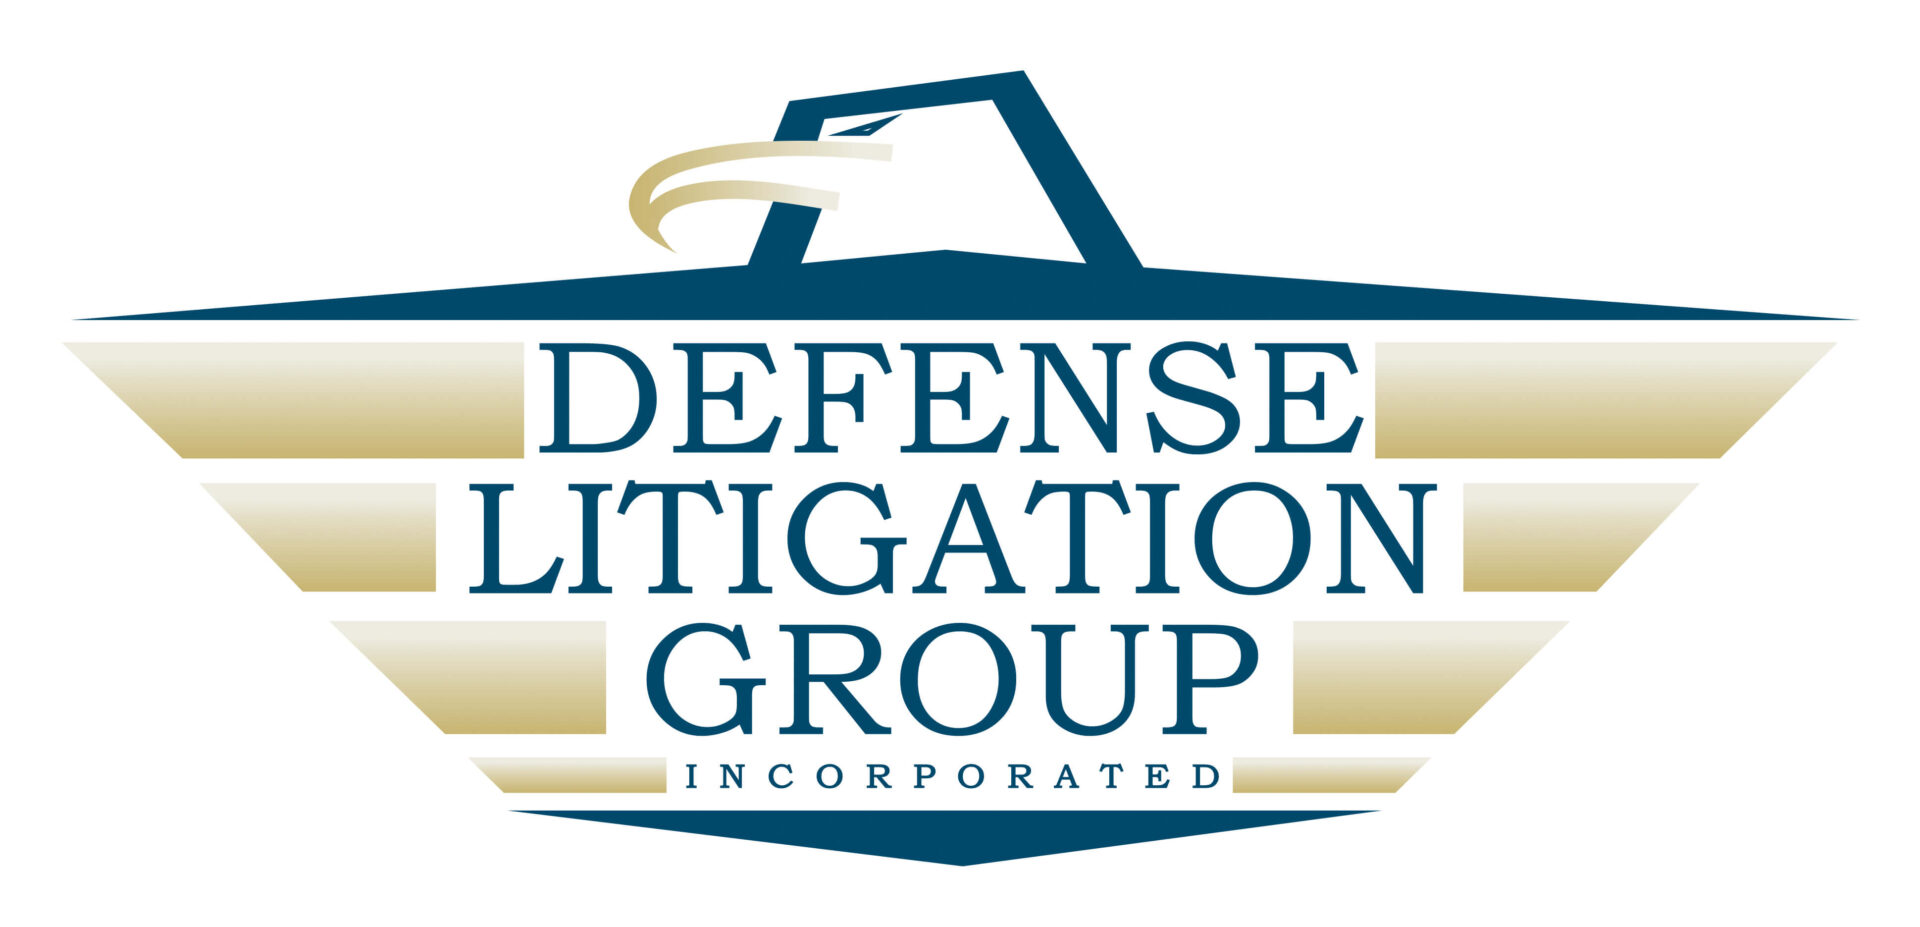 Defense Litigation Group, Inc.